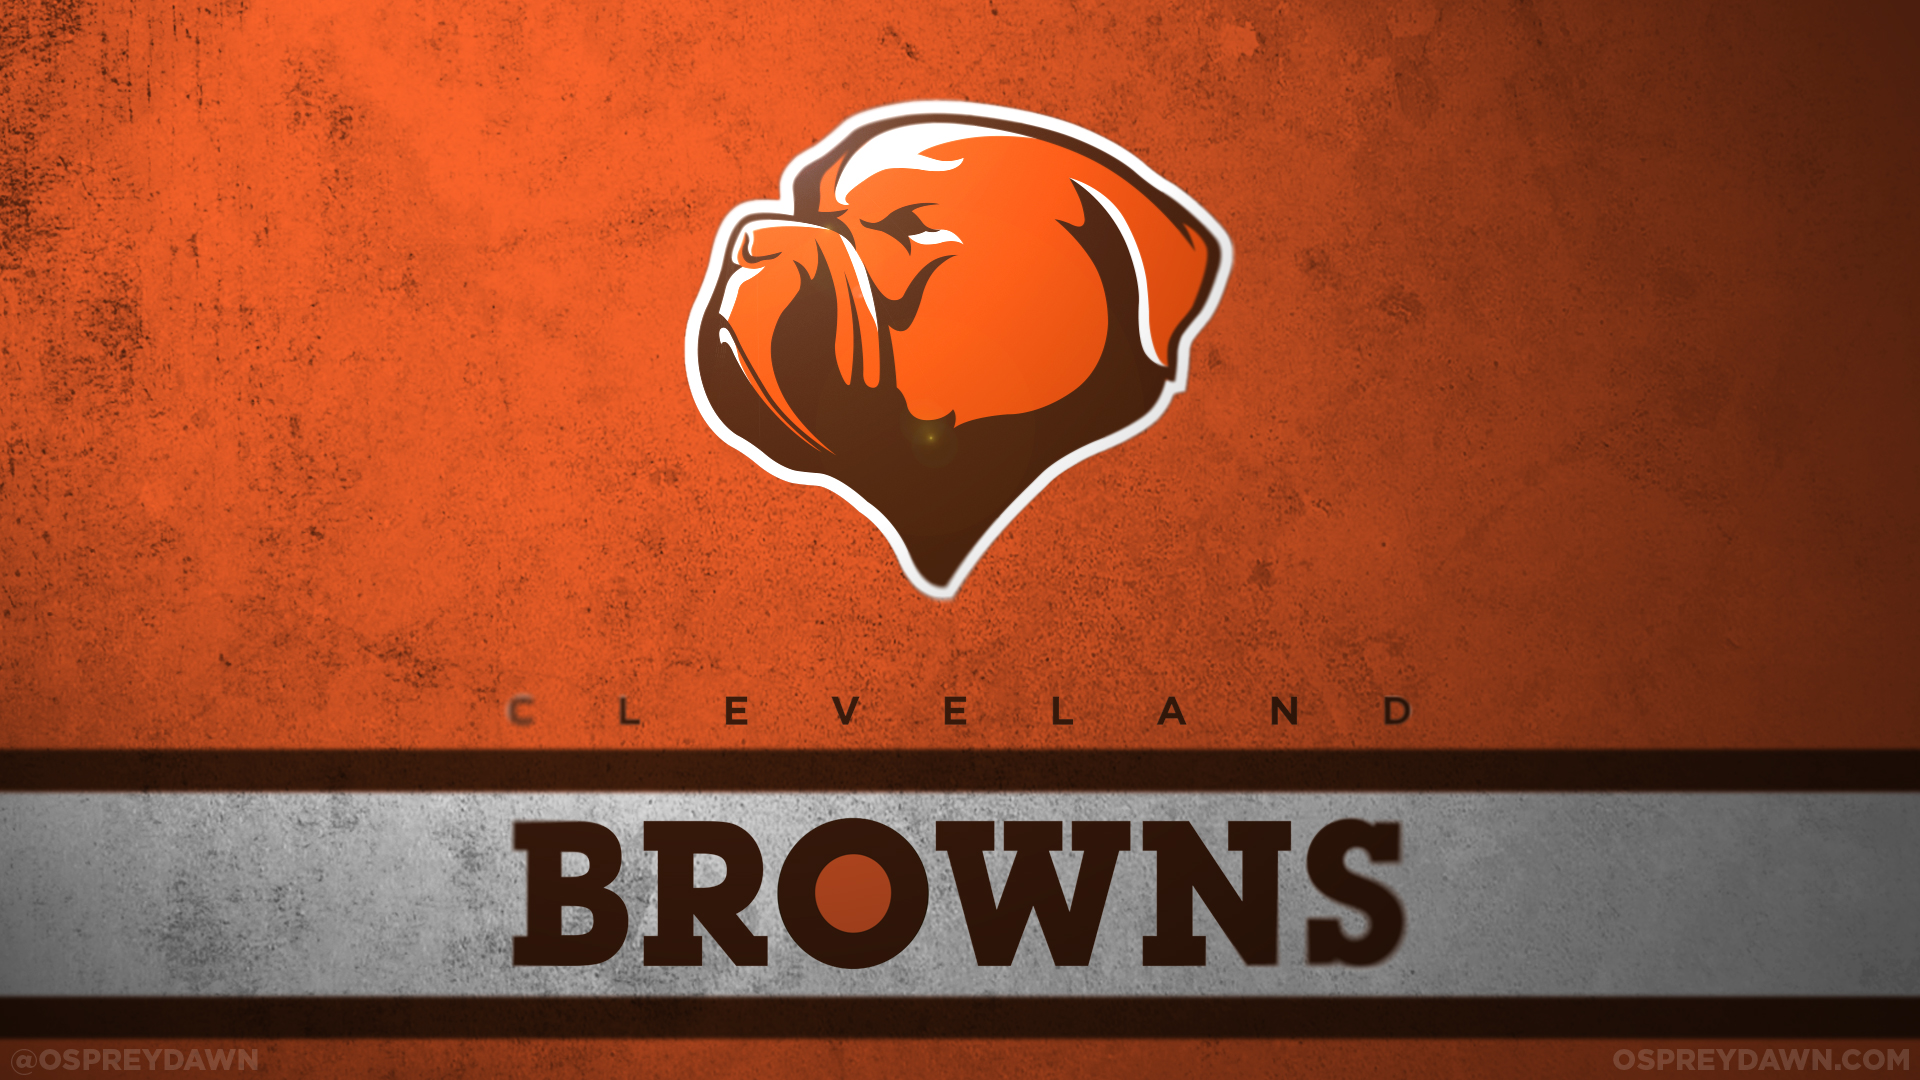 1000+ images about The Land u0026lt;3 on Pinterest   Cleveland browns